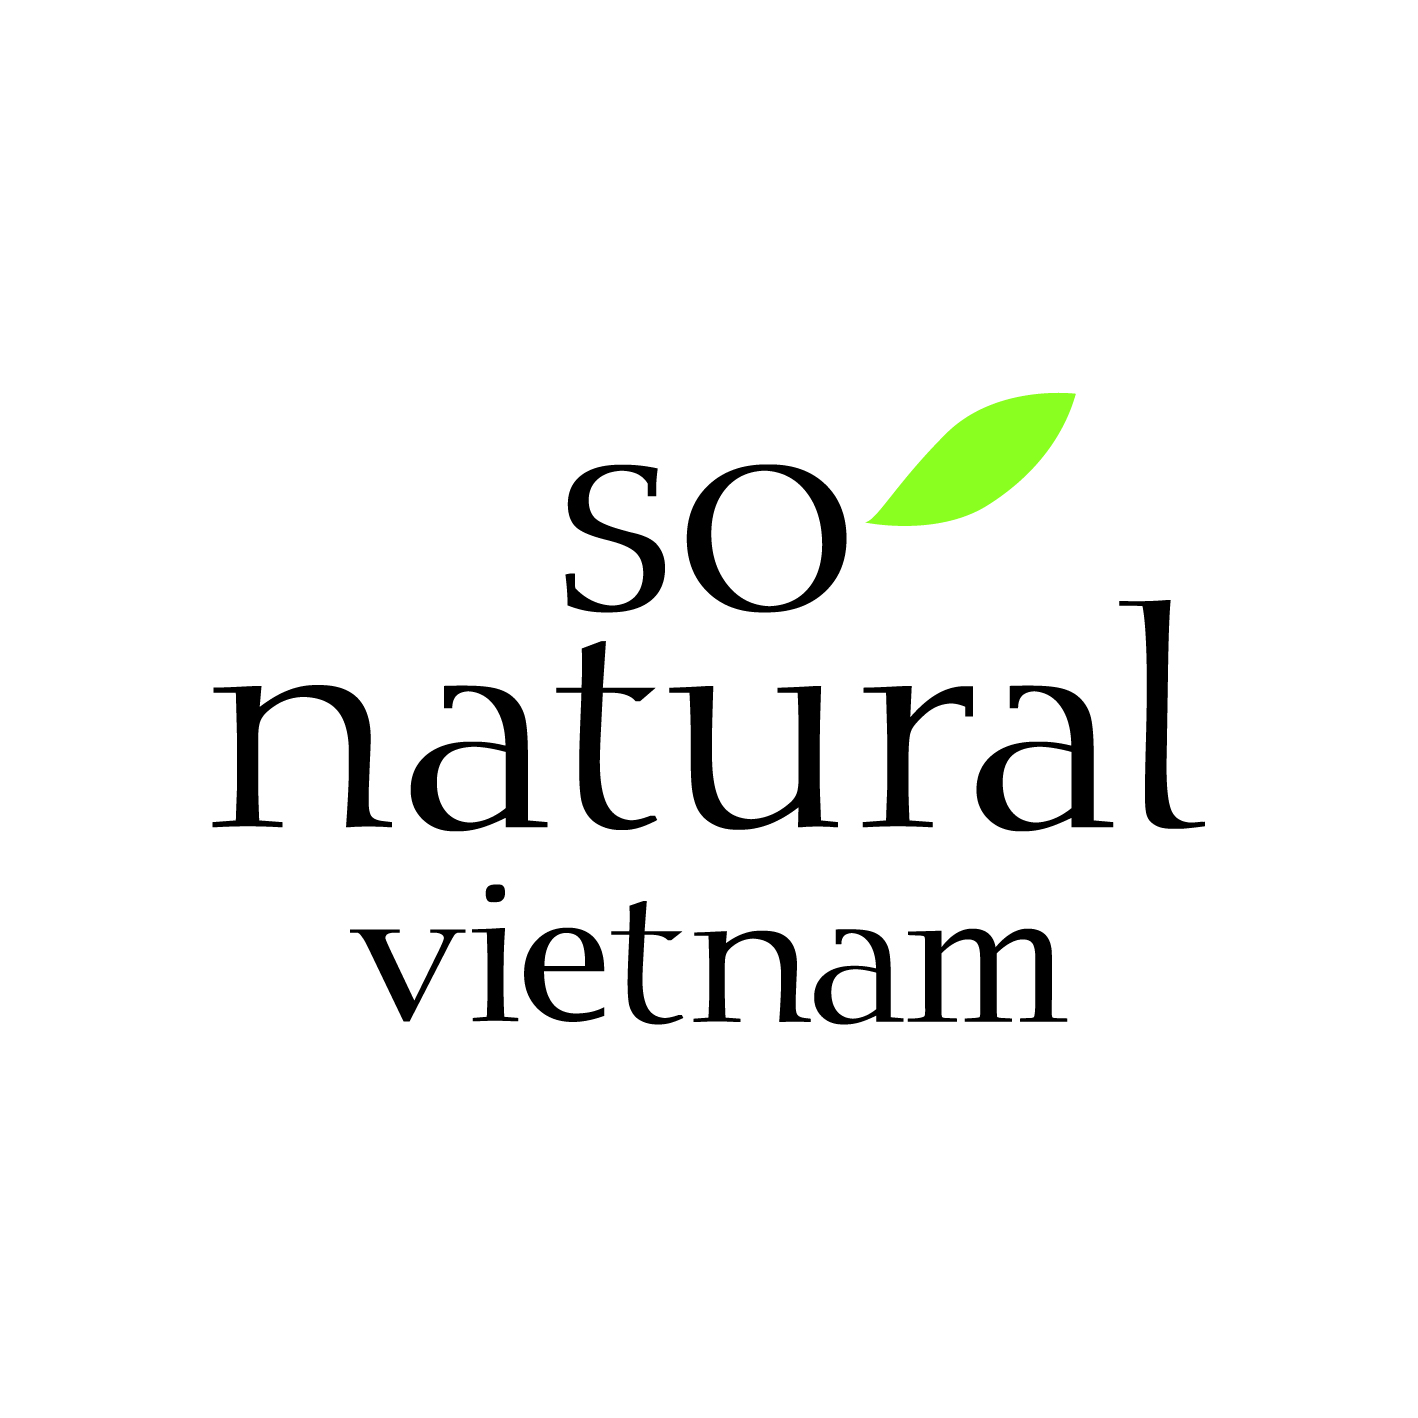 So'Natural Việt Nam Official